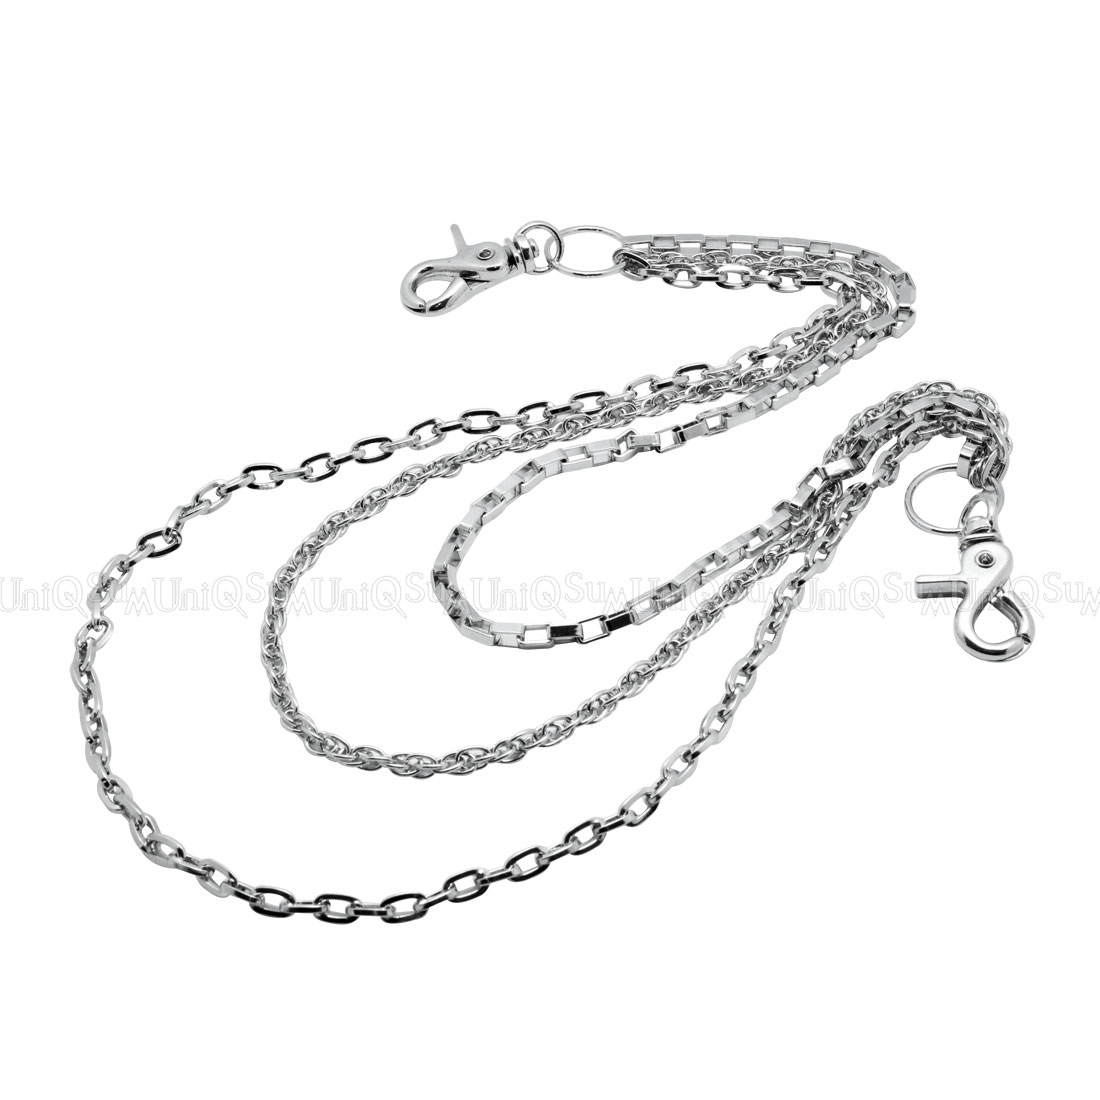 necklaces with chain for watch wear weight chains gold lightweight light daily designs